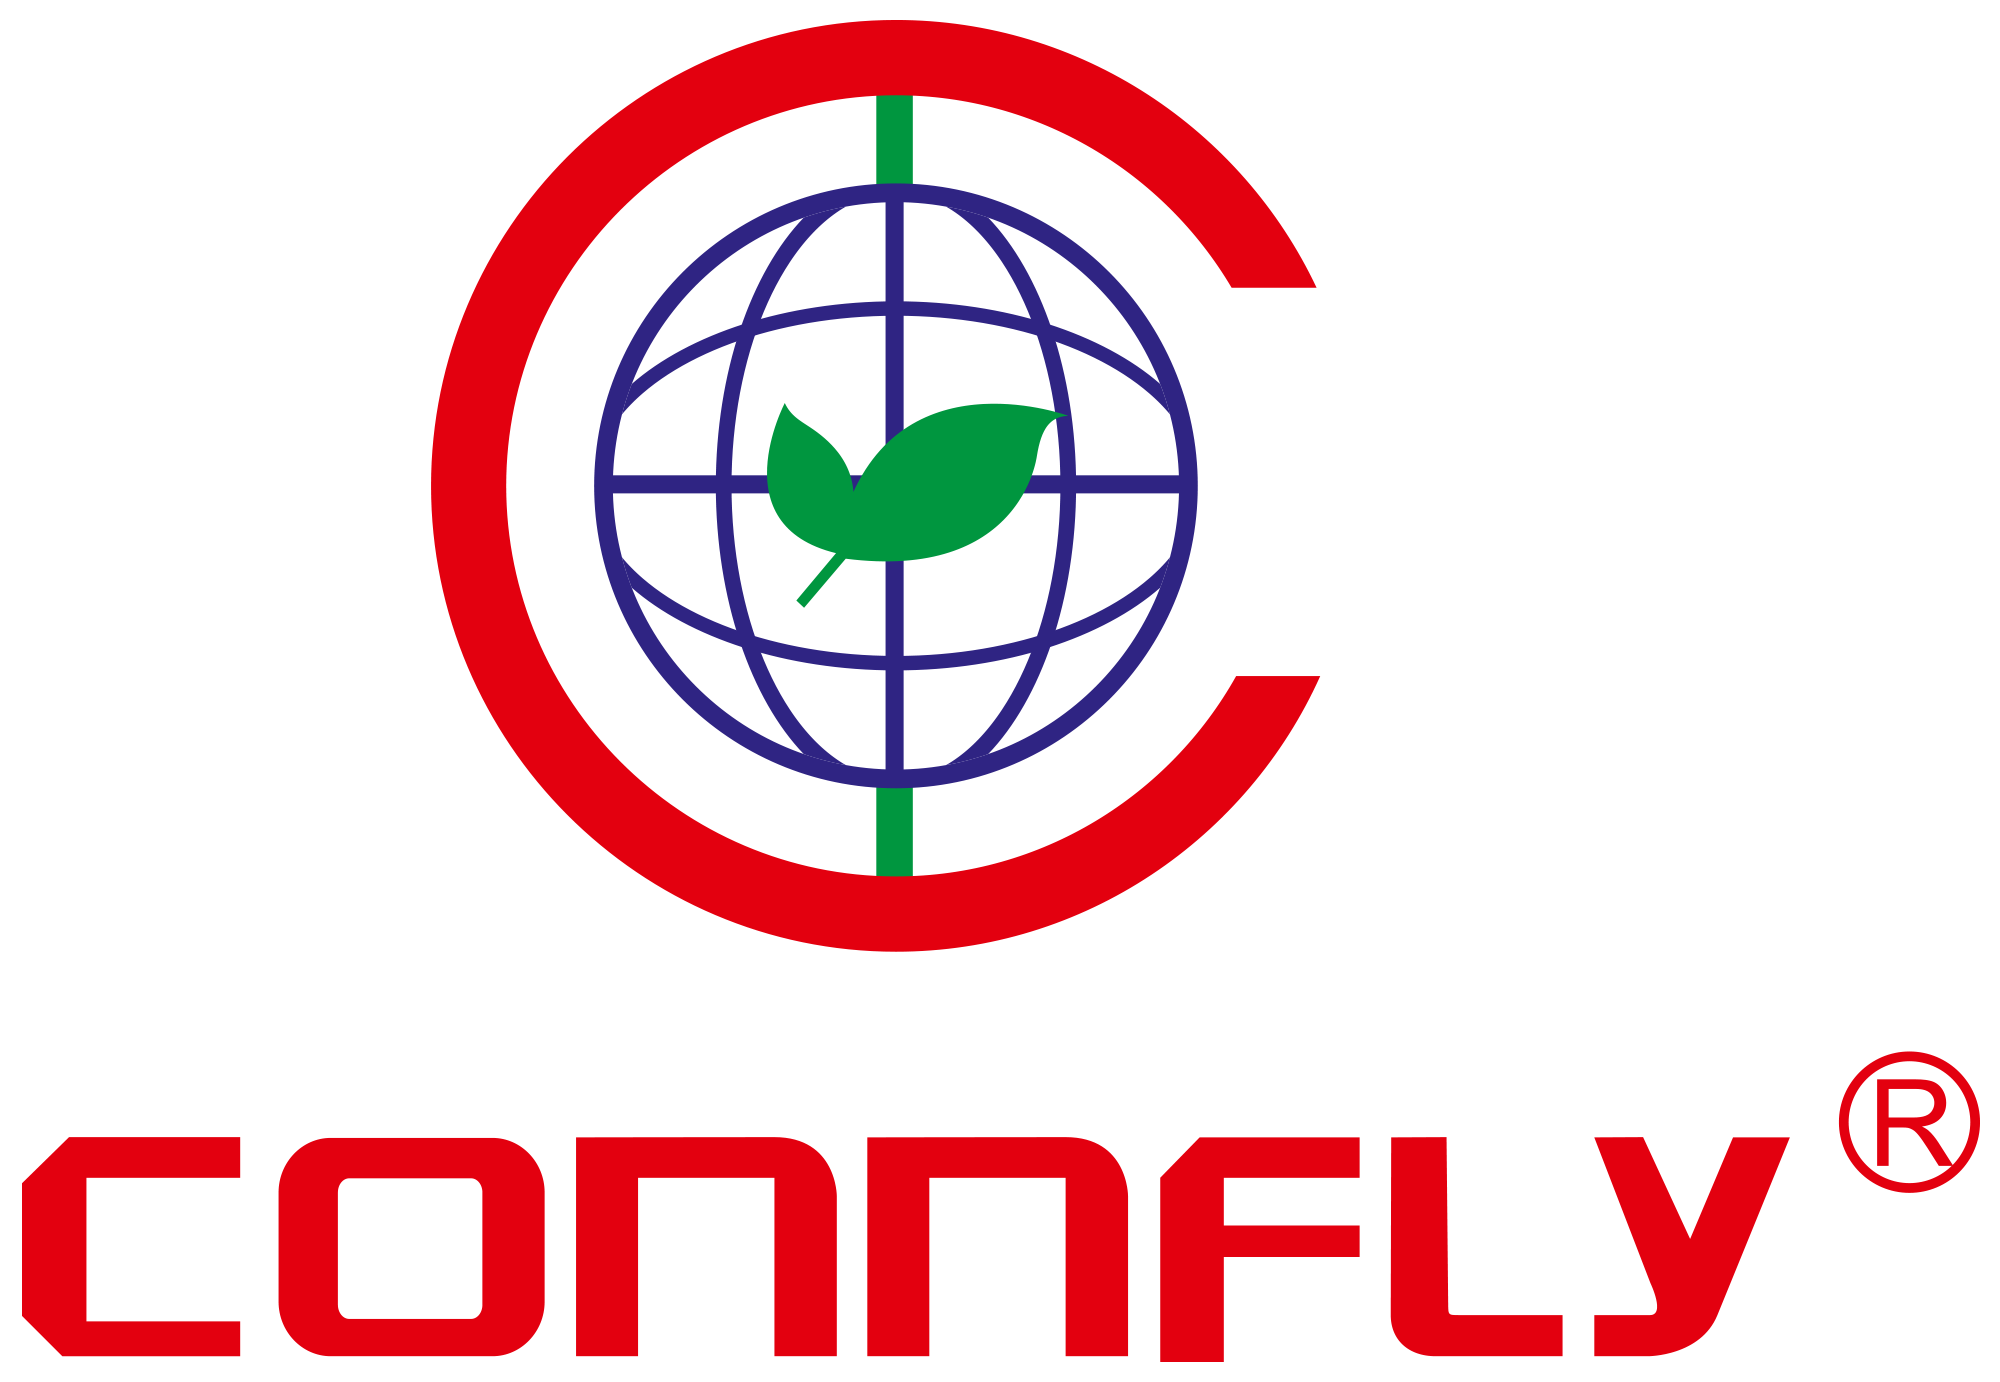 CONNFLY